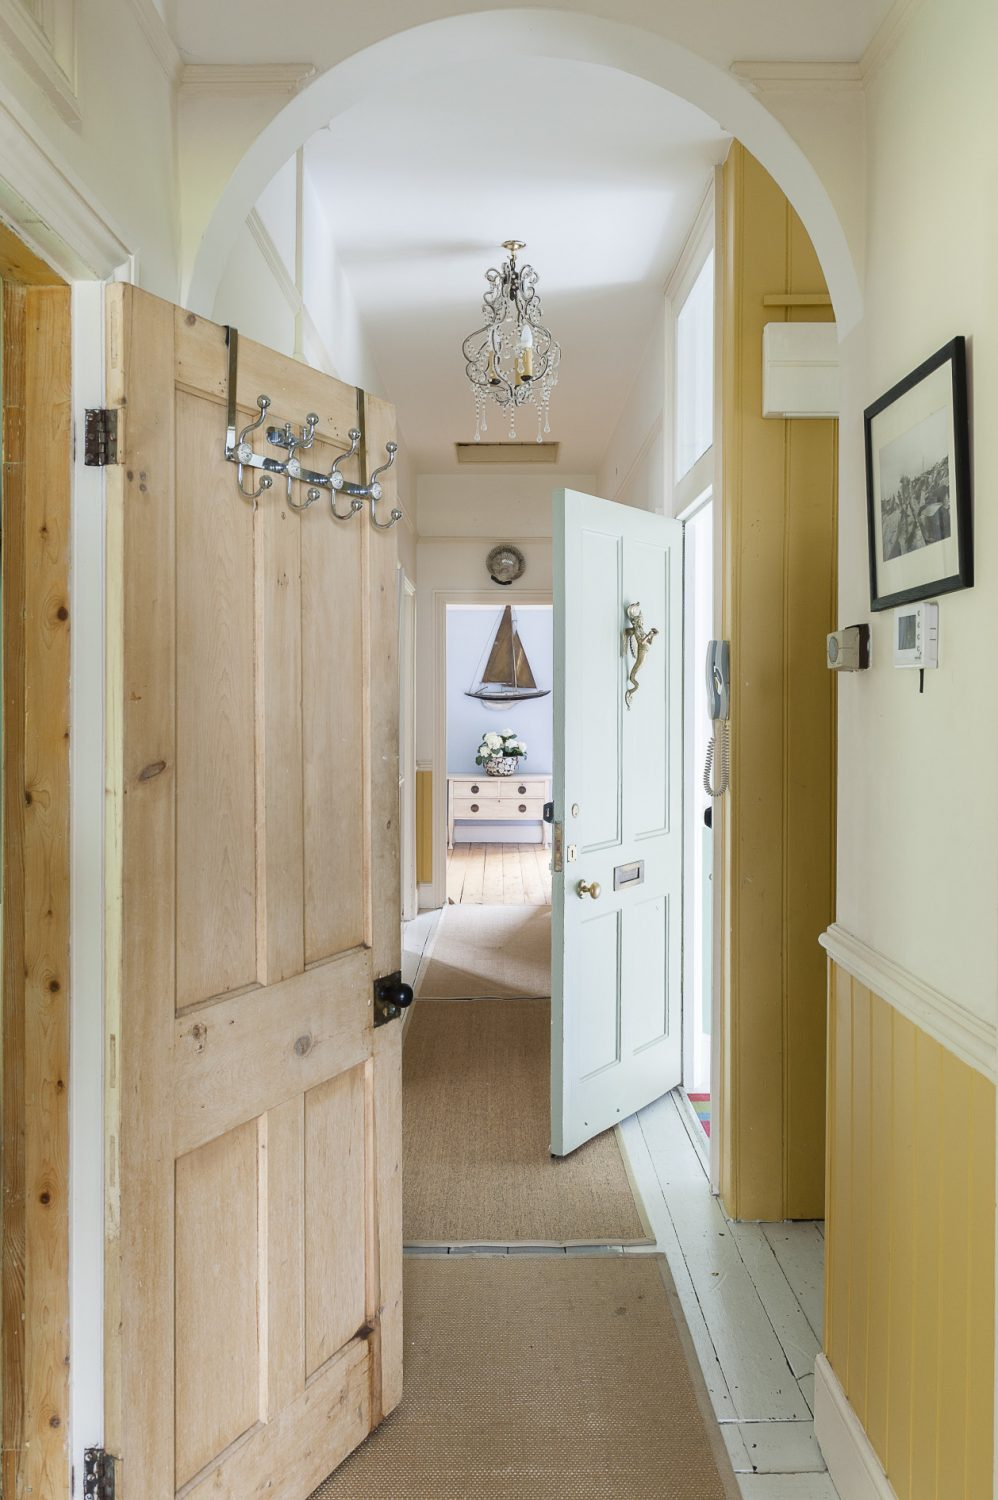 A long corridor passes from the front to the back of the upstairs flat, between the sitting room to the rear bedroom